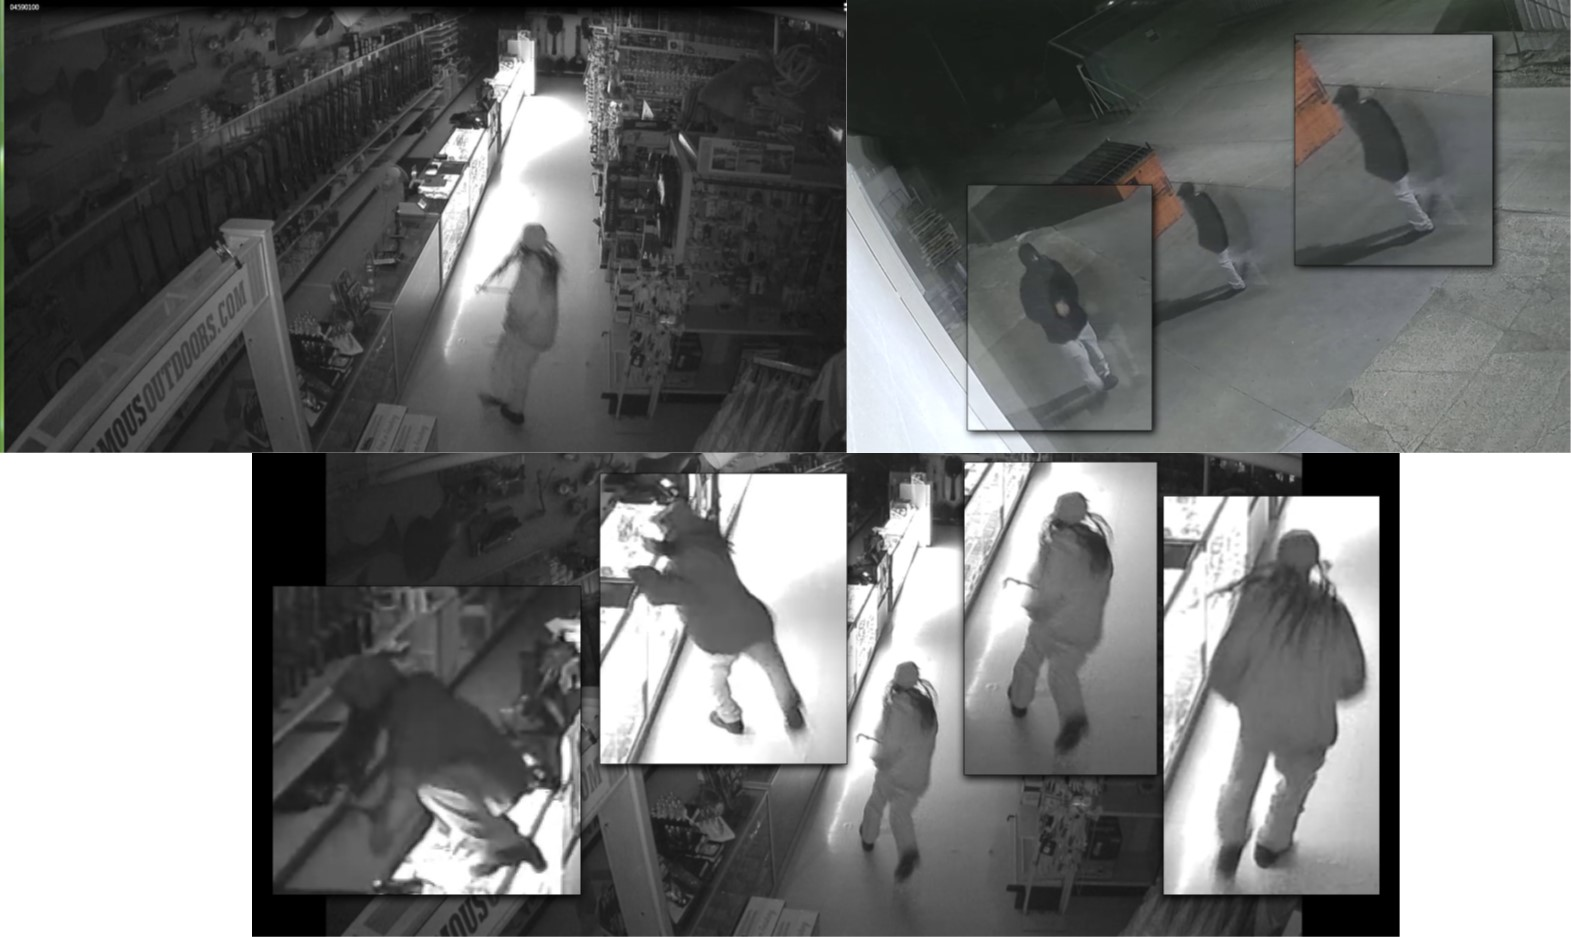 Unknown suspect, wearing a white jacket and pants, black shoes and long hair